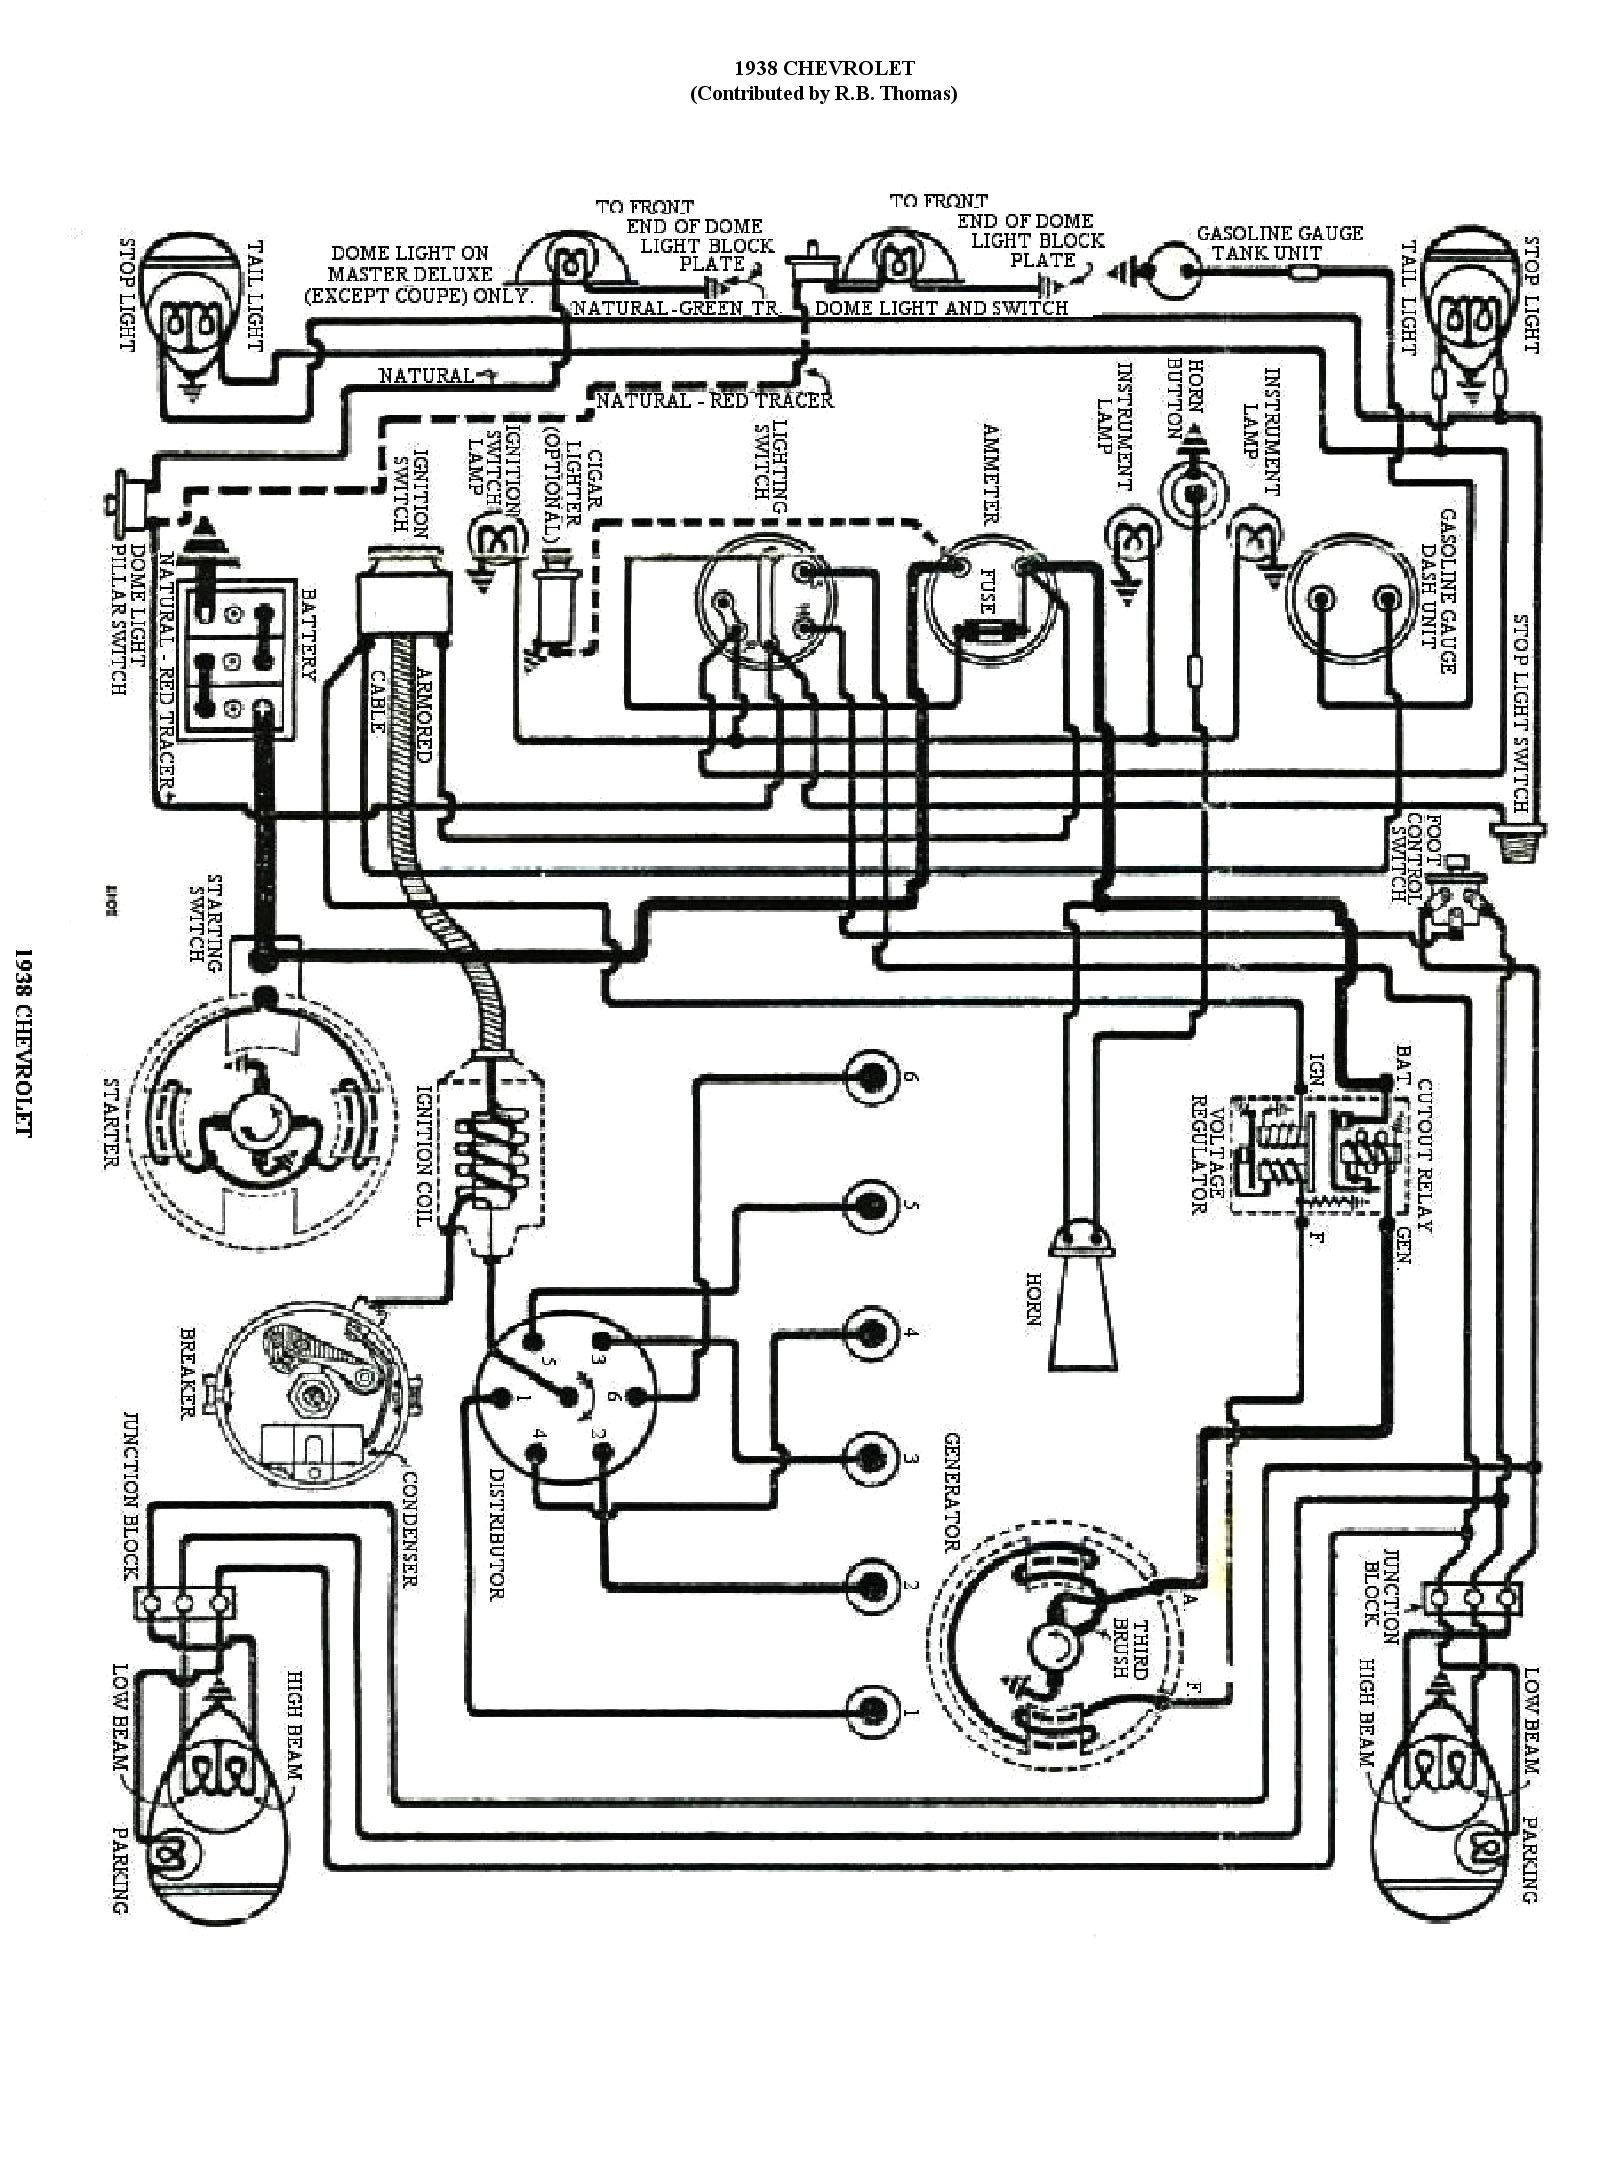 38wiring chevy wiring diagrams 6 volt universal wiring harness at edmiracle.co